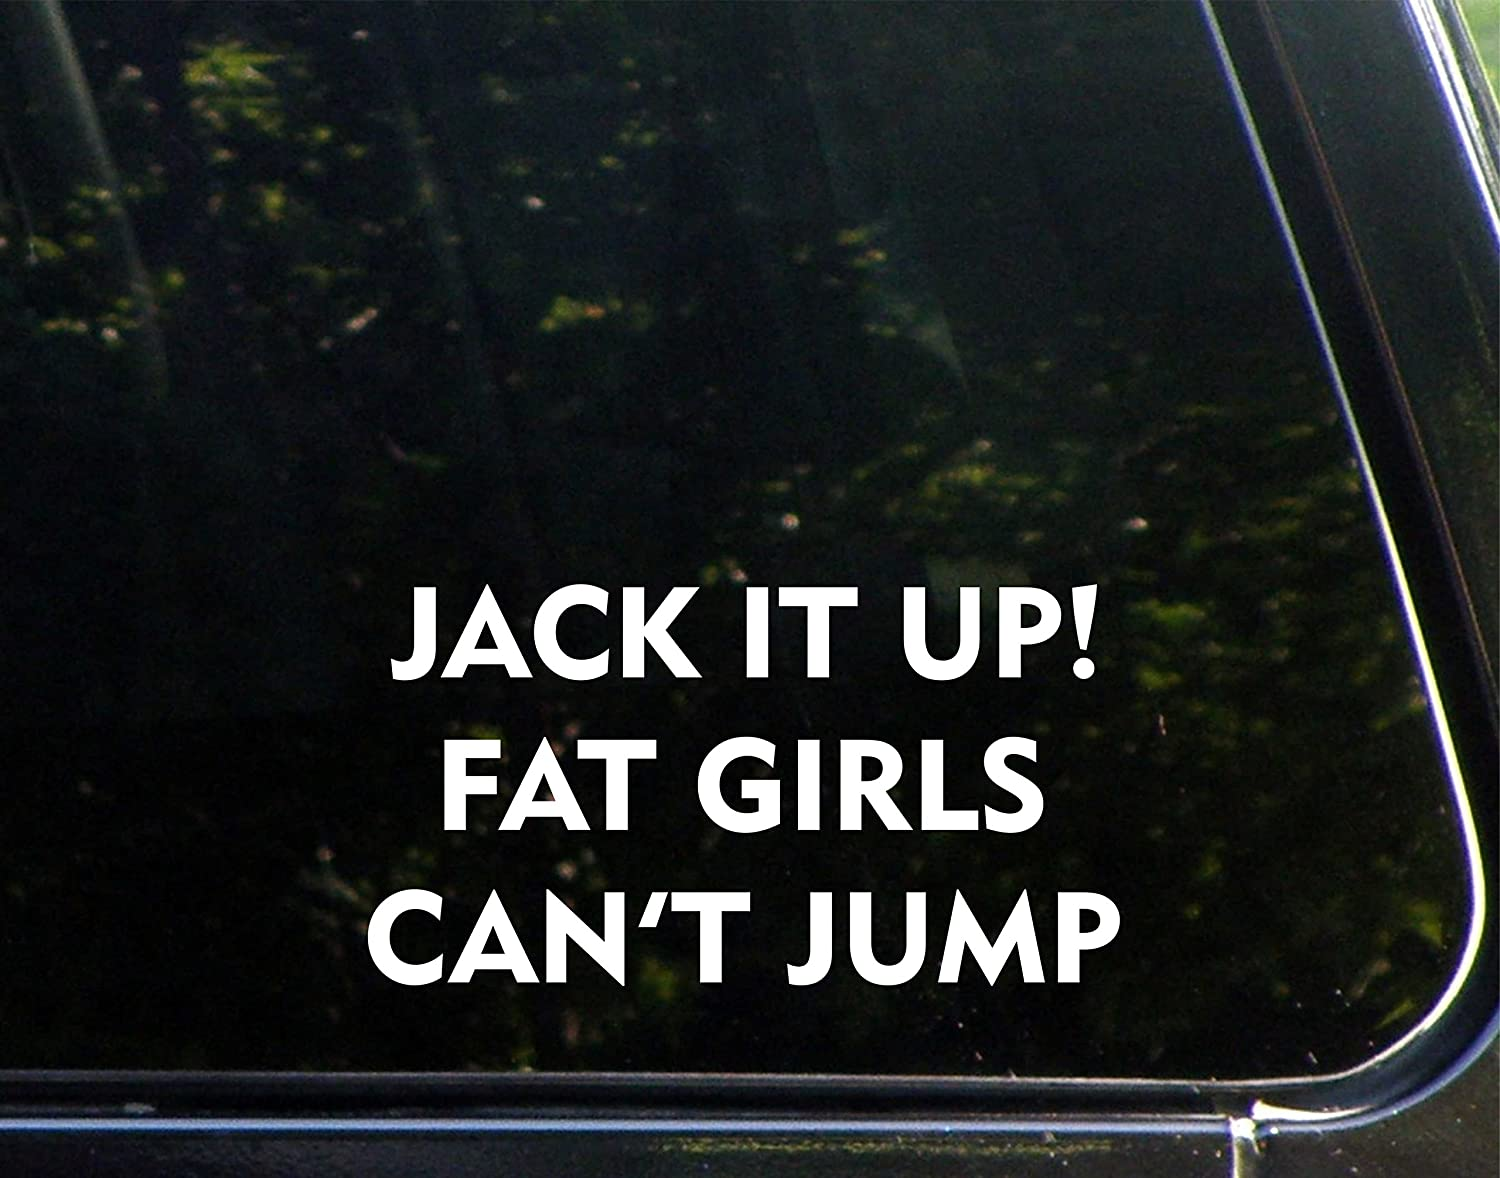 Jack Em Up Fat Guys Can/'t Climb Vinyl Decal or Sticker